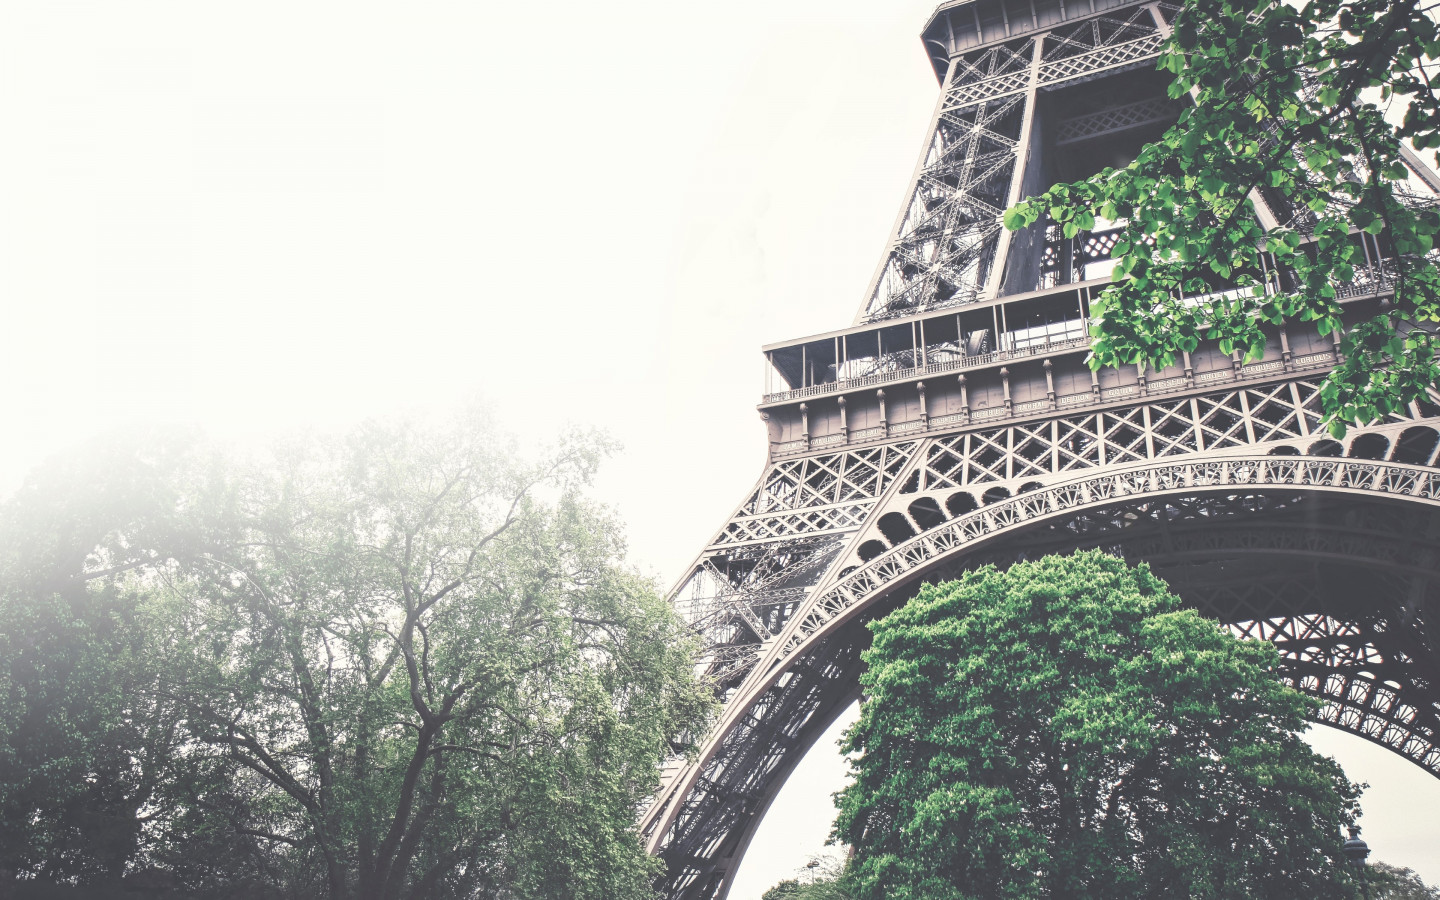 Tour Eiffel in a foggy day | 1440x900 wallpaper